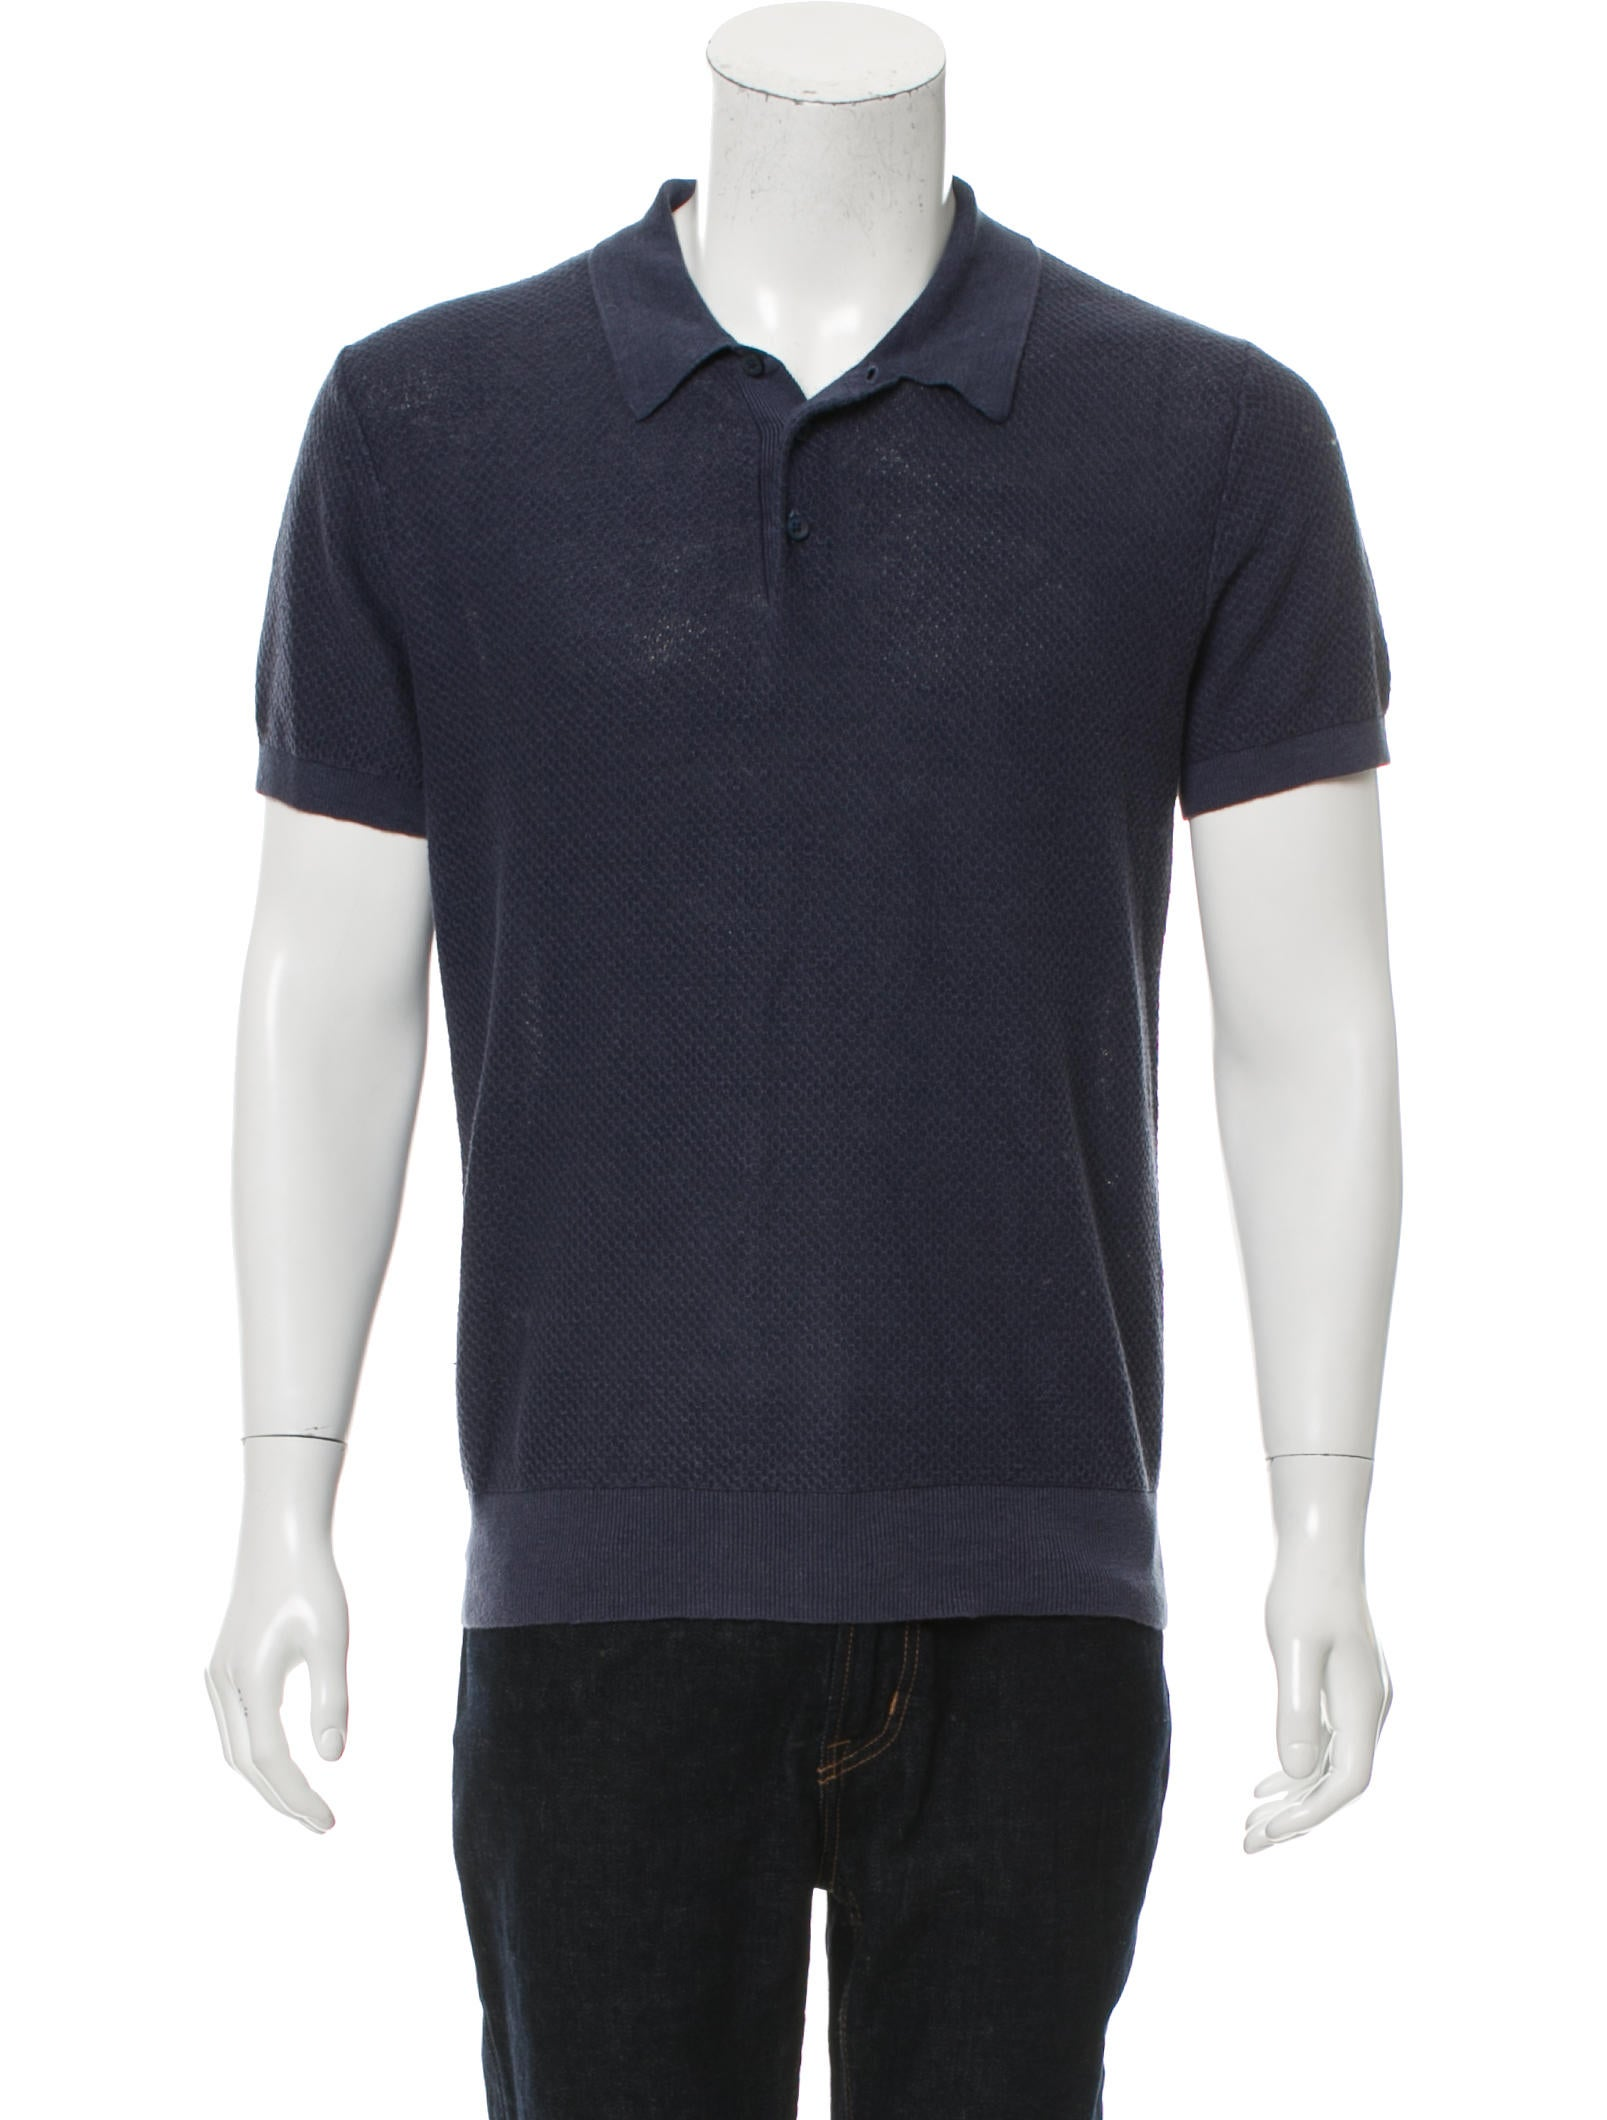 Find great deals on eBay for ralph lauren polo knit shirt. Shop with confidence.